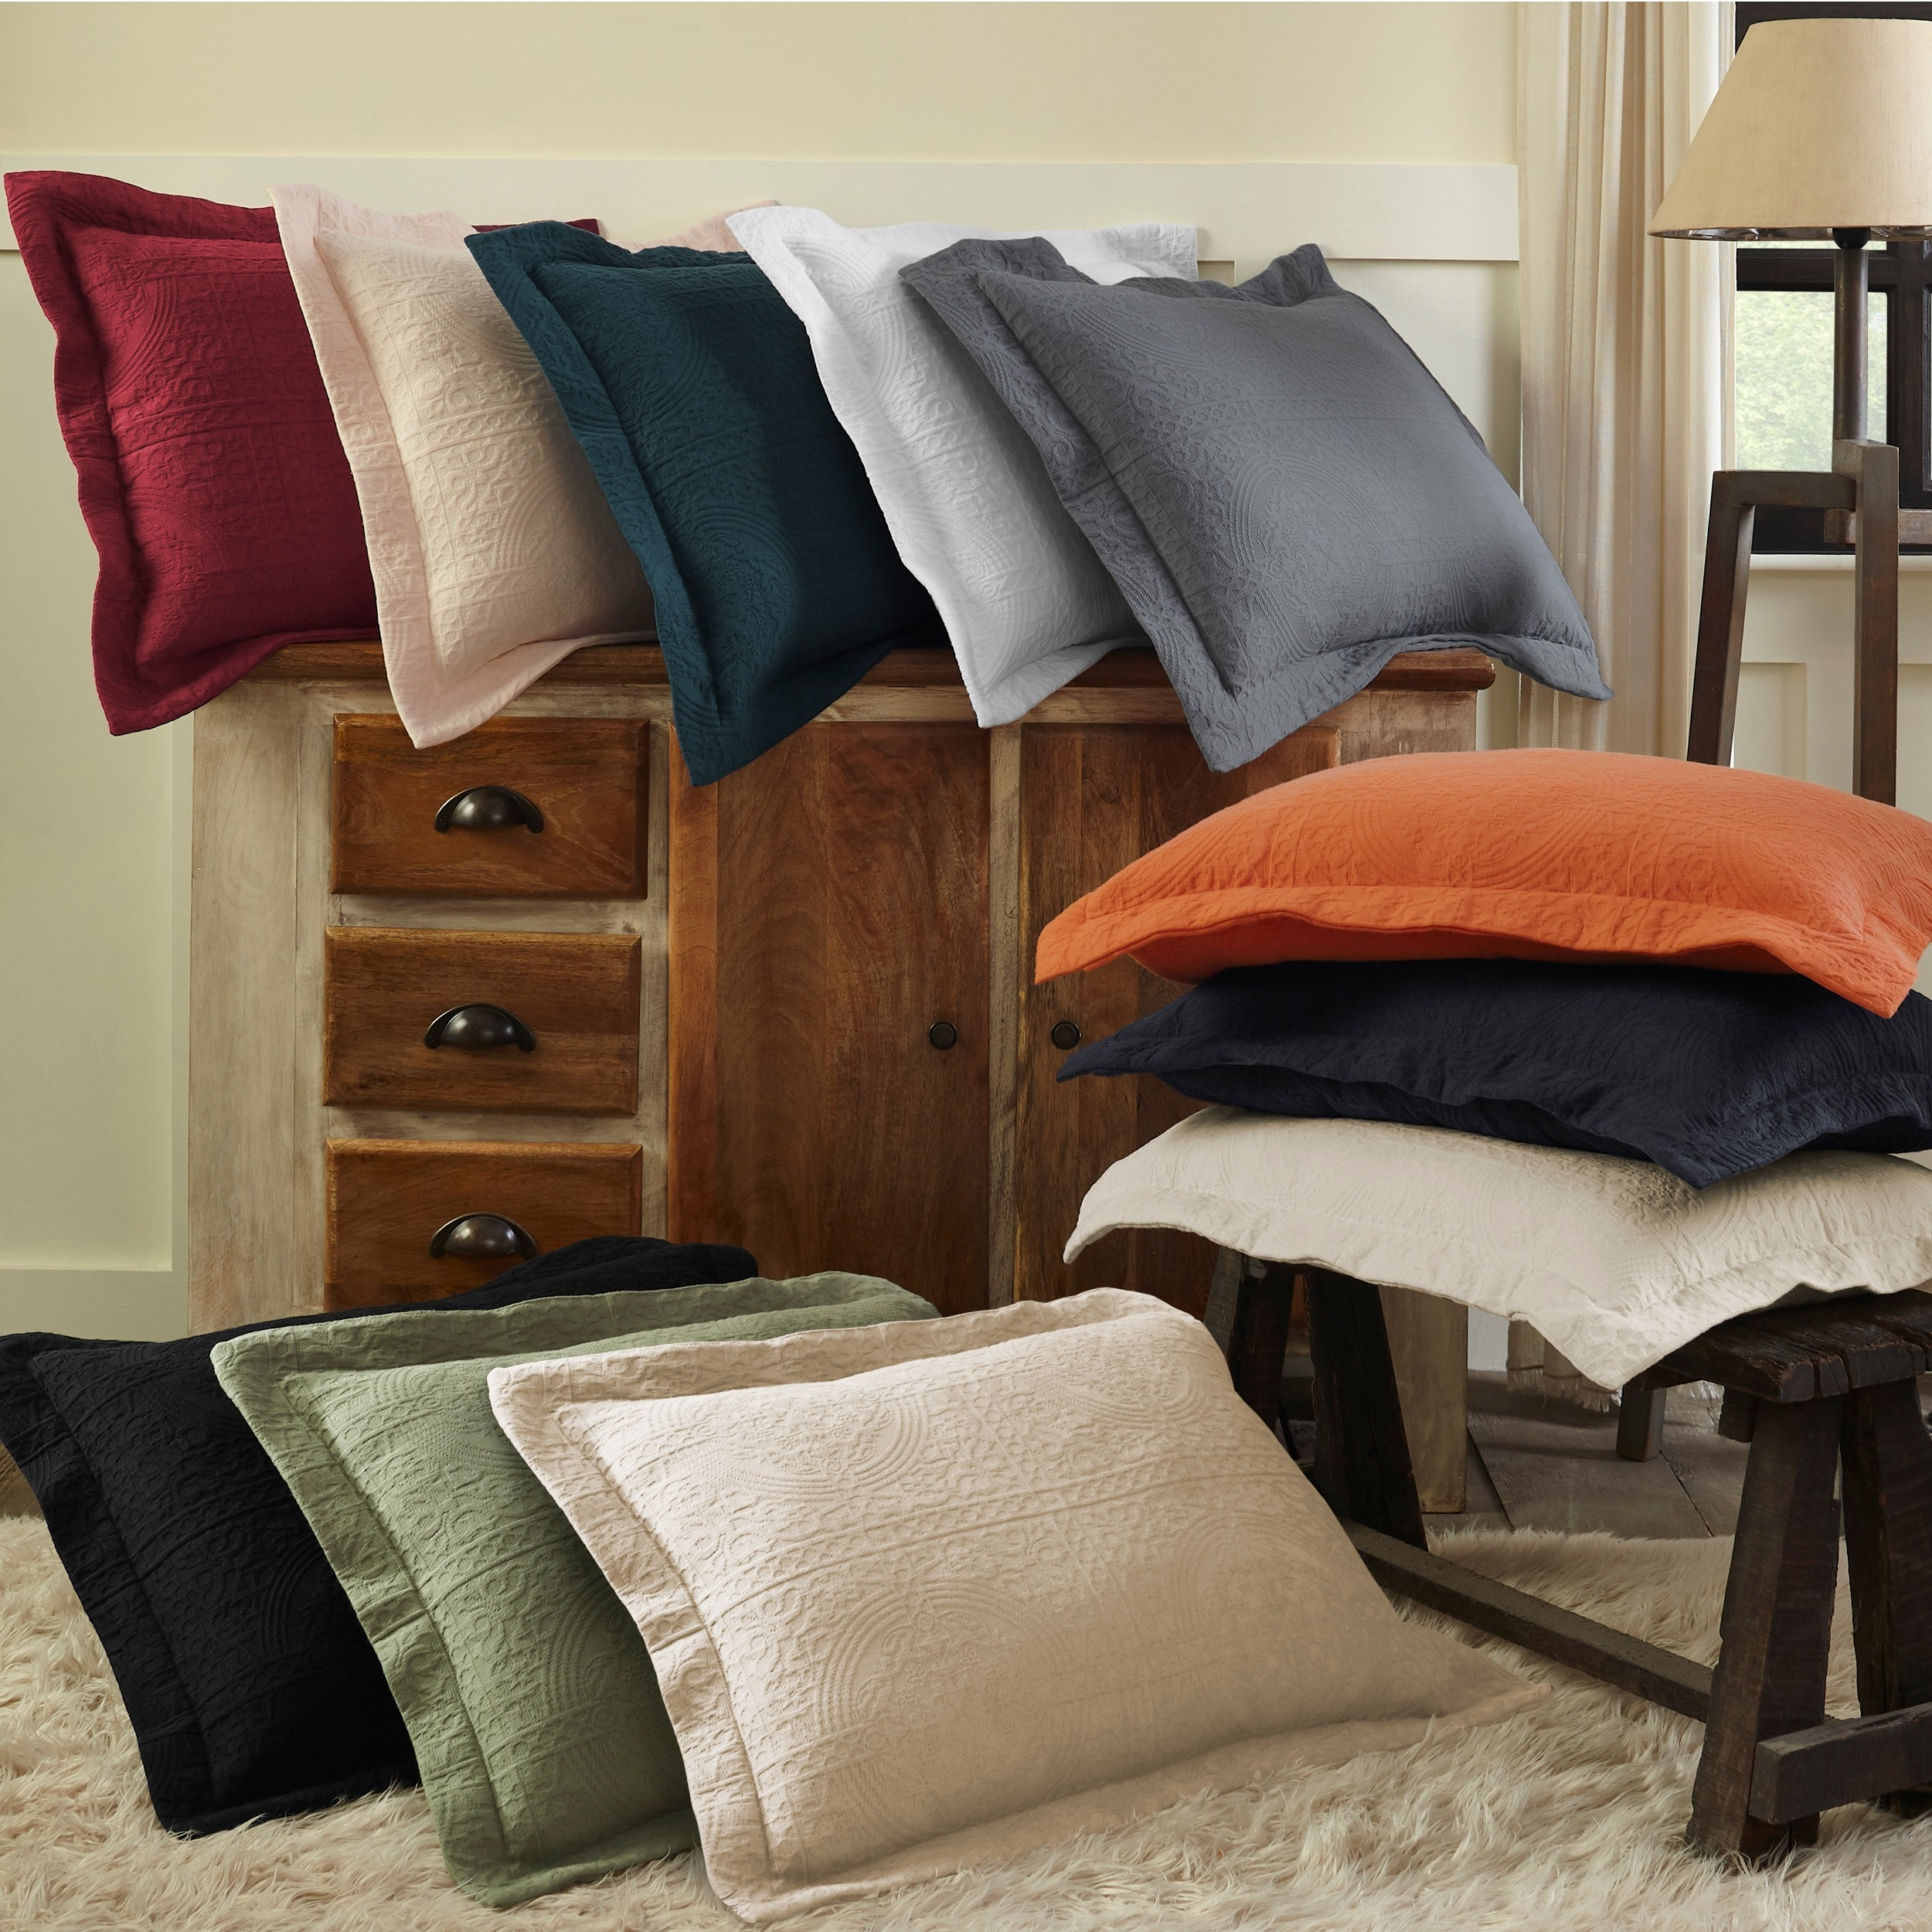 timberline collection lis fleur french brands in j comforter aw trading product enchantment elysee cavalier de countryside front teton vhc quilt set chalet bedding